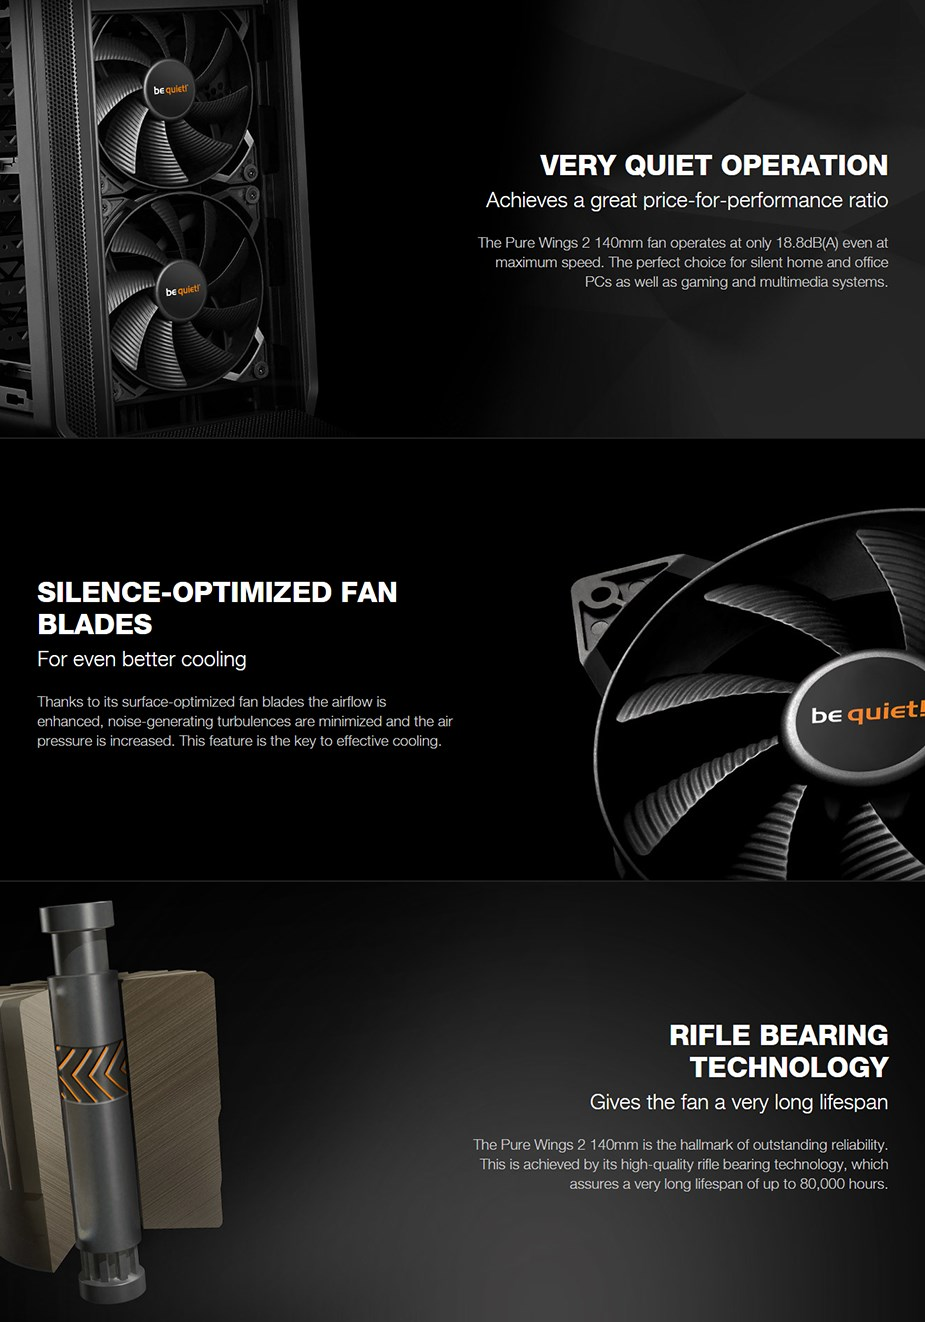 be quiet! Pure Wings 2 140mm Case Fan - Desktop Overview 1